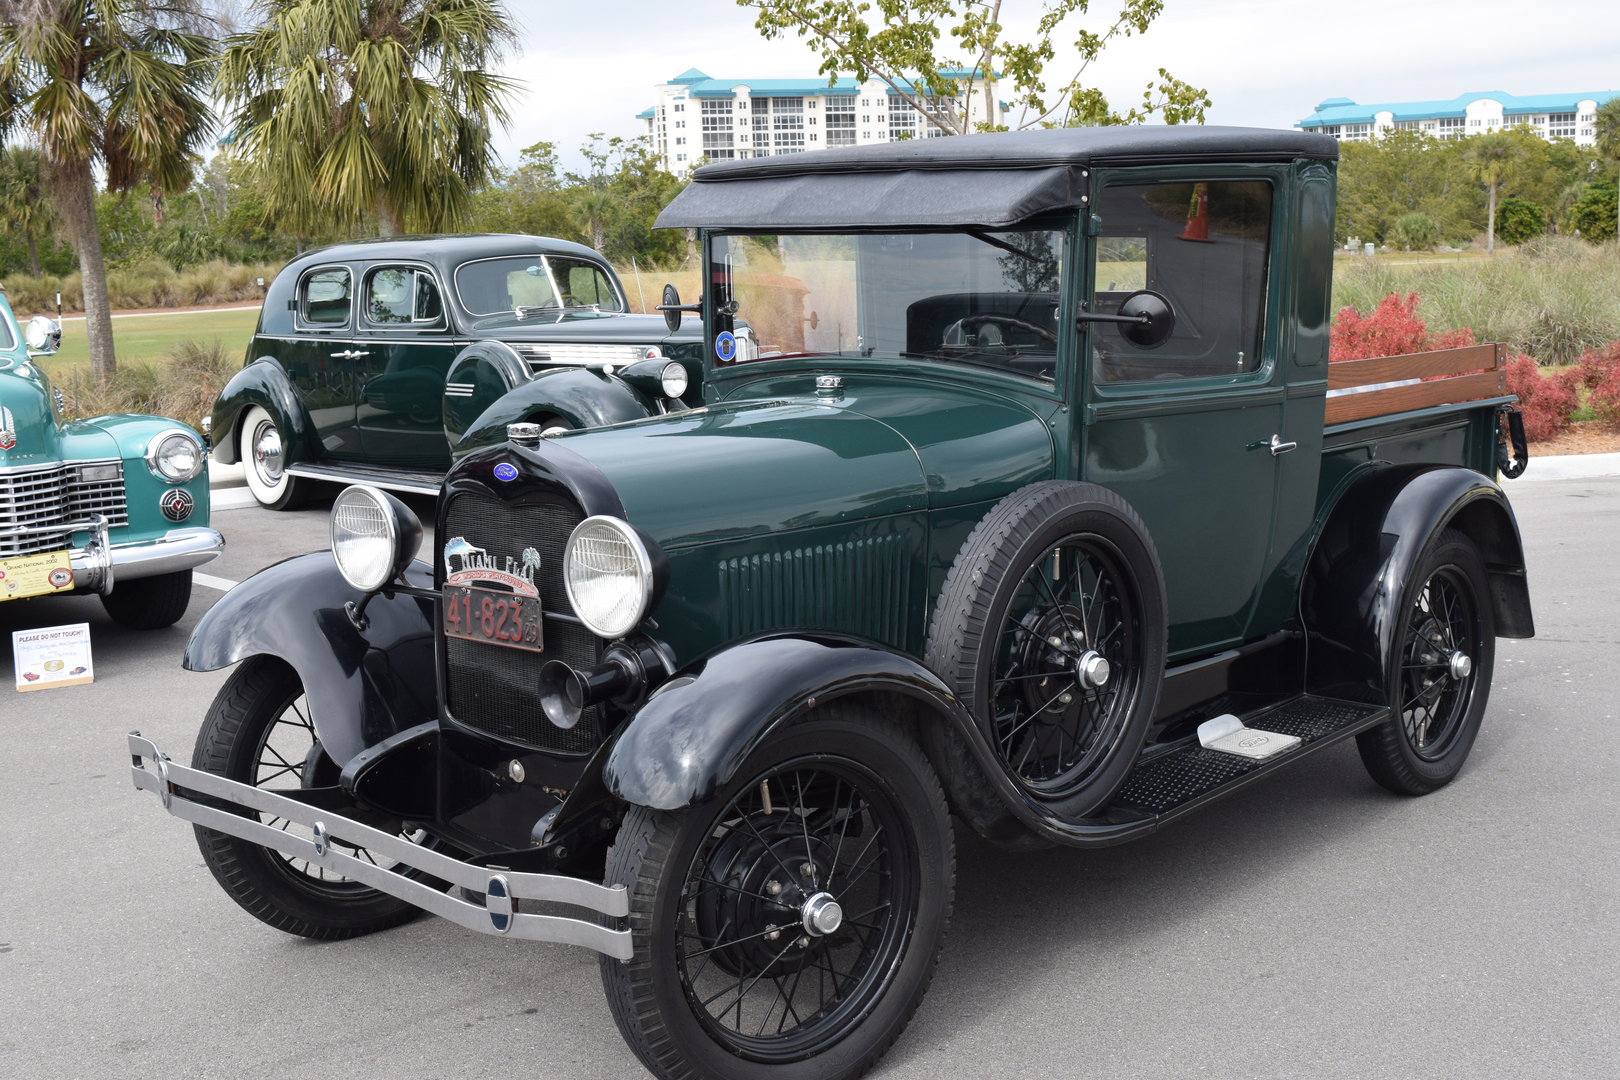 Tours Photos - Edison car show ft myers